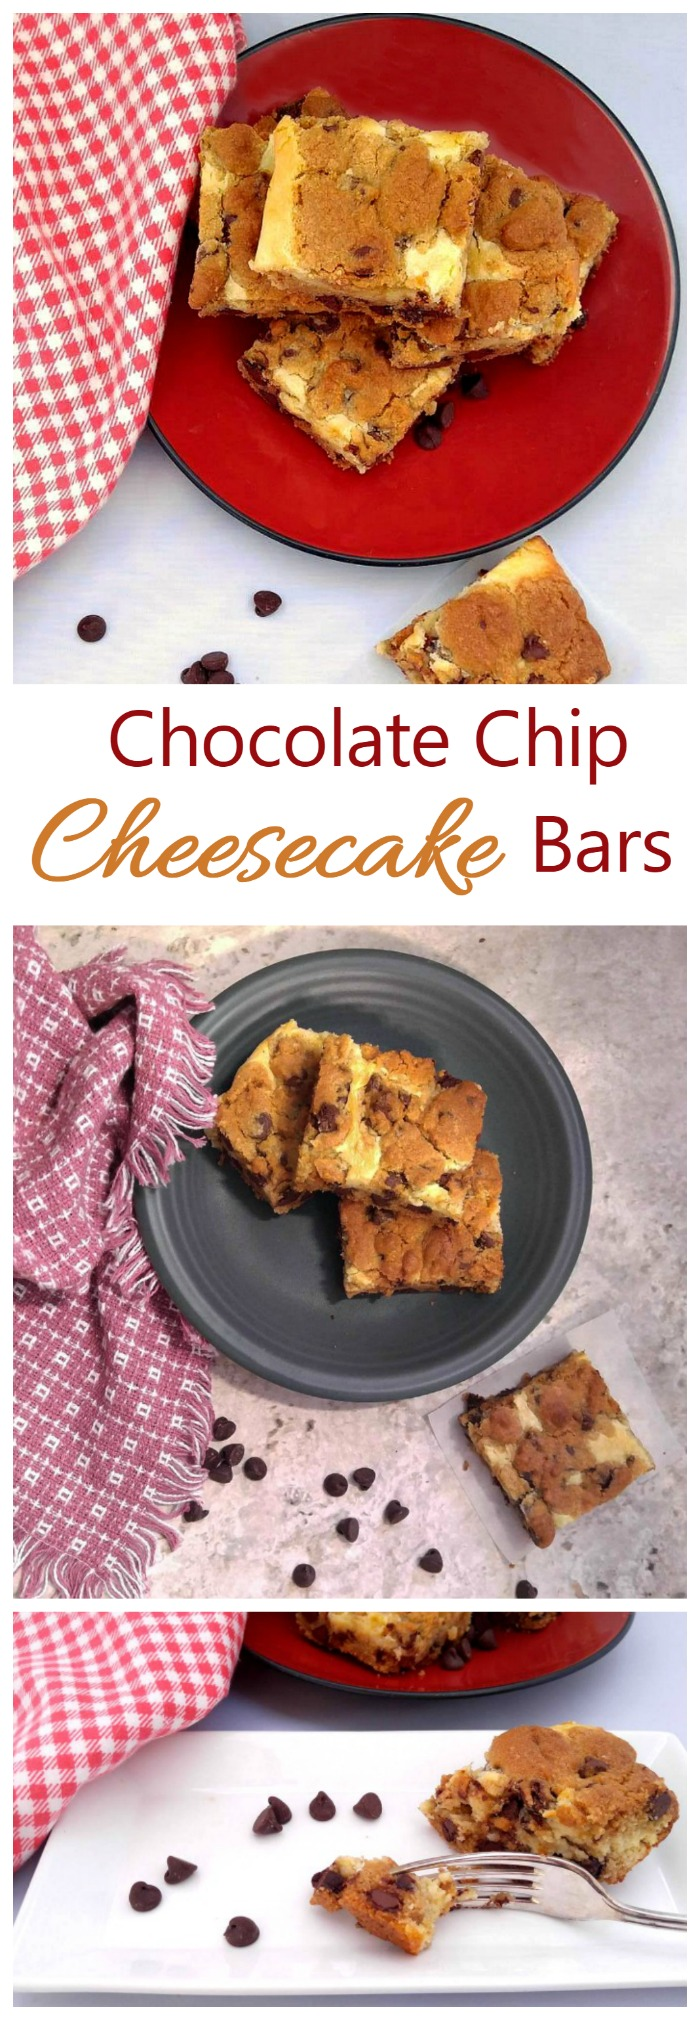 Chocolate Chip Cheesecake Bars - Recipes Just 4U